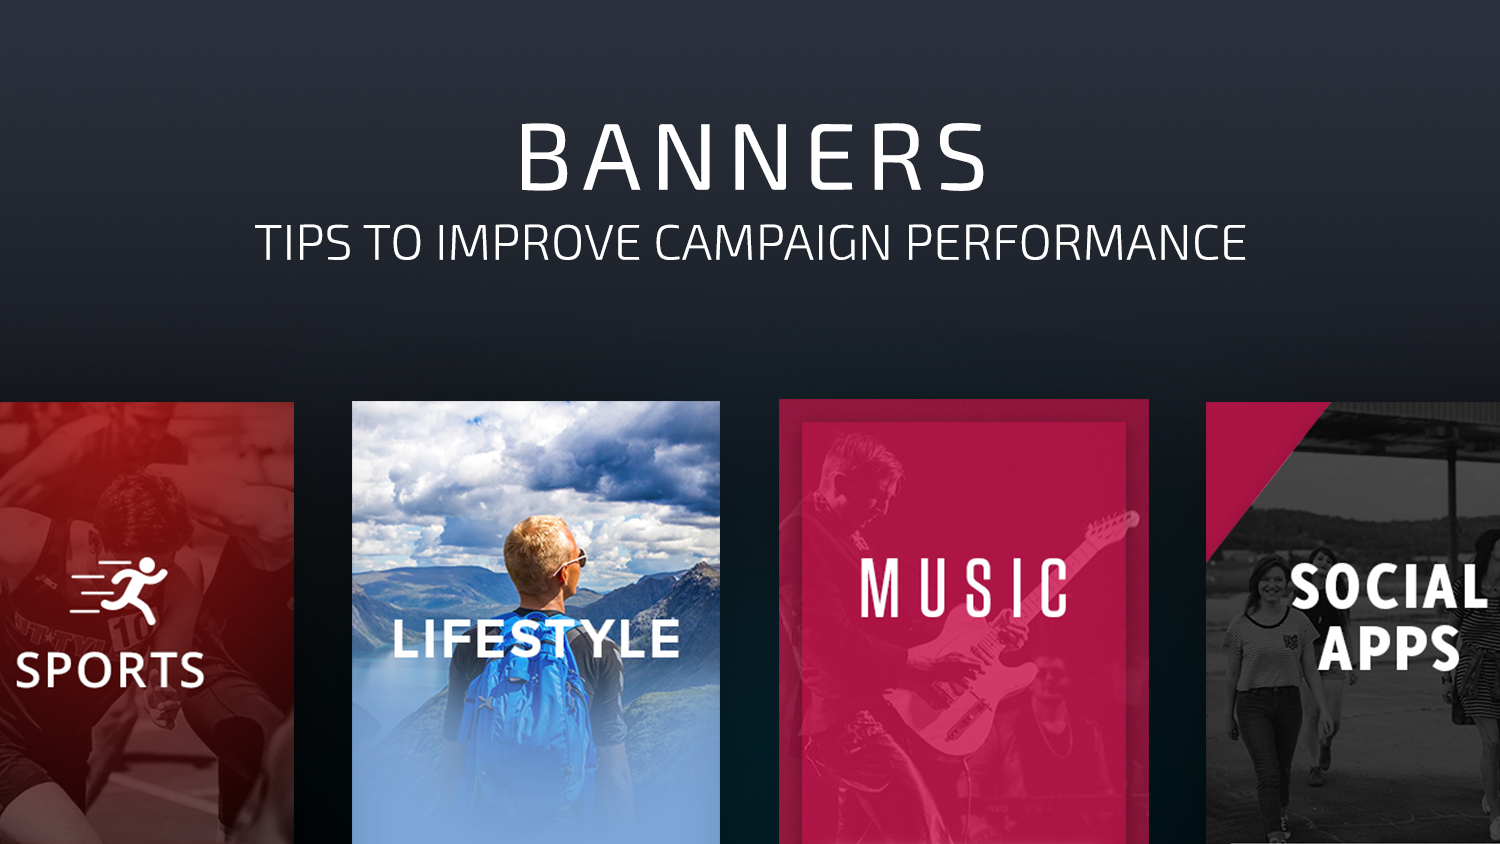 Banners Tips To Improve Campaign Performance